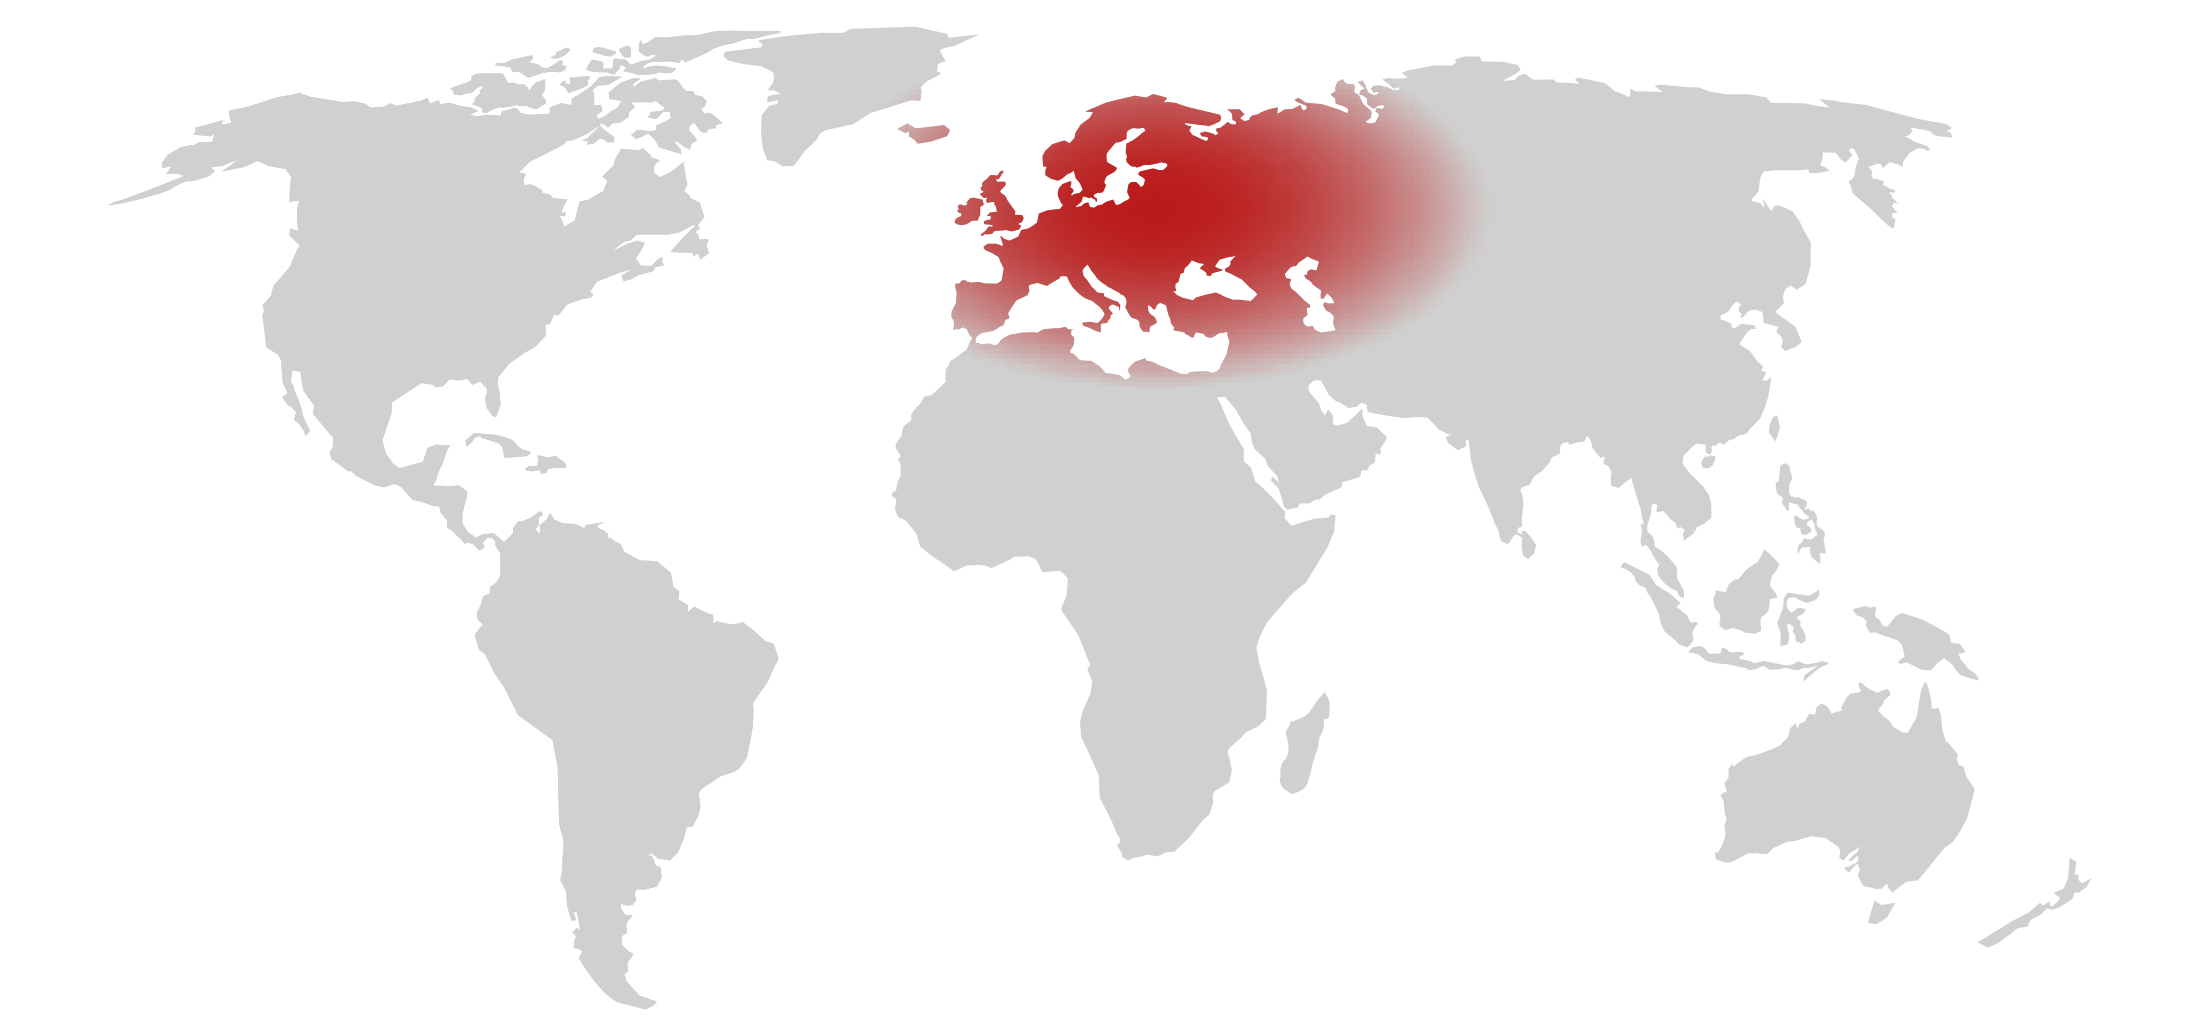 Map showing the area of Europe